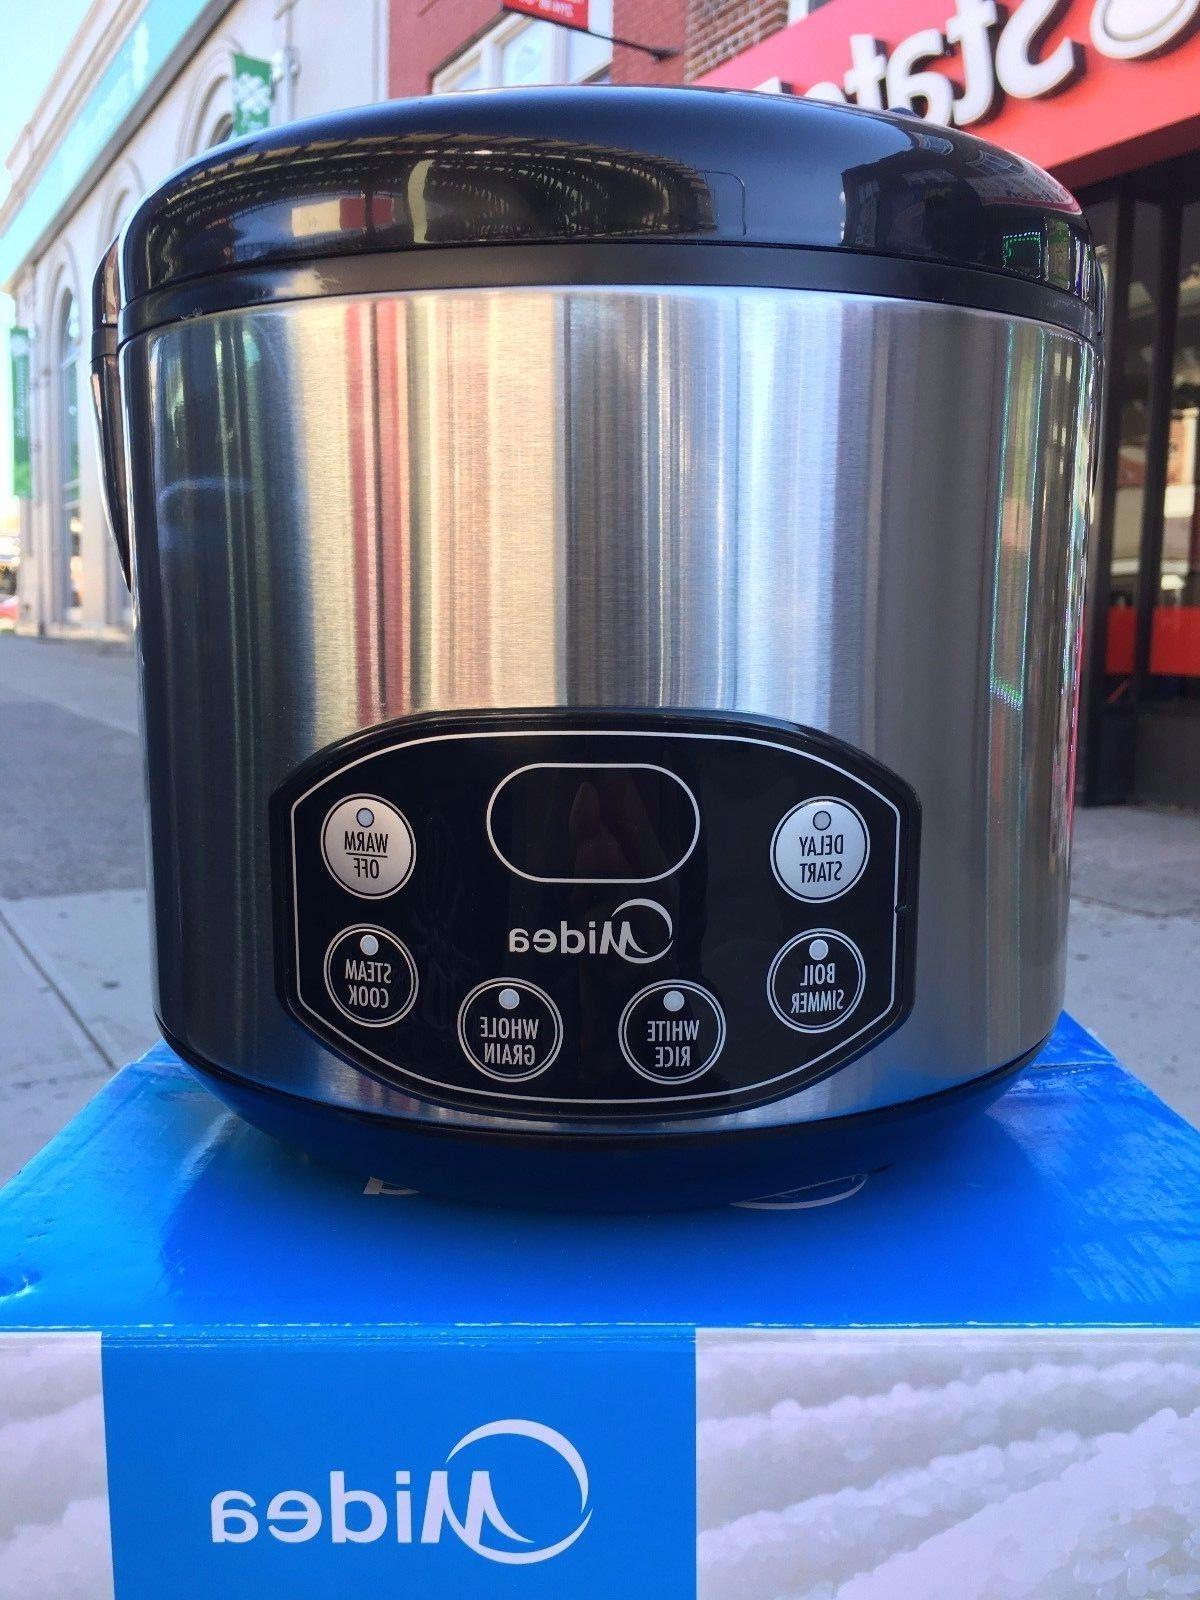 multifunction stainless steel rice cooker